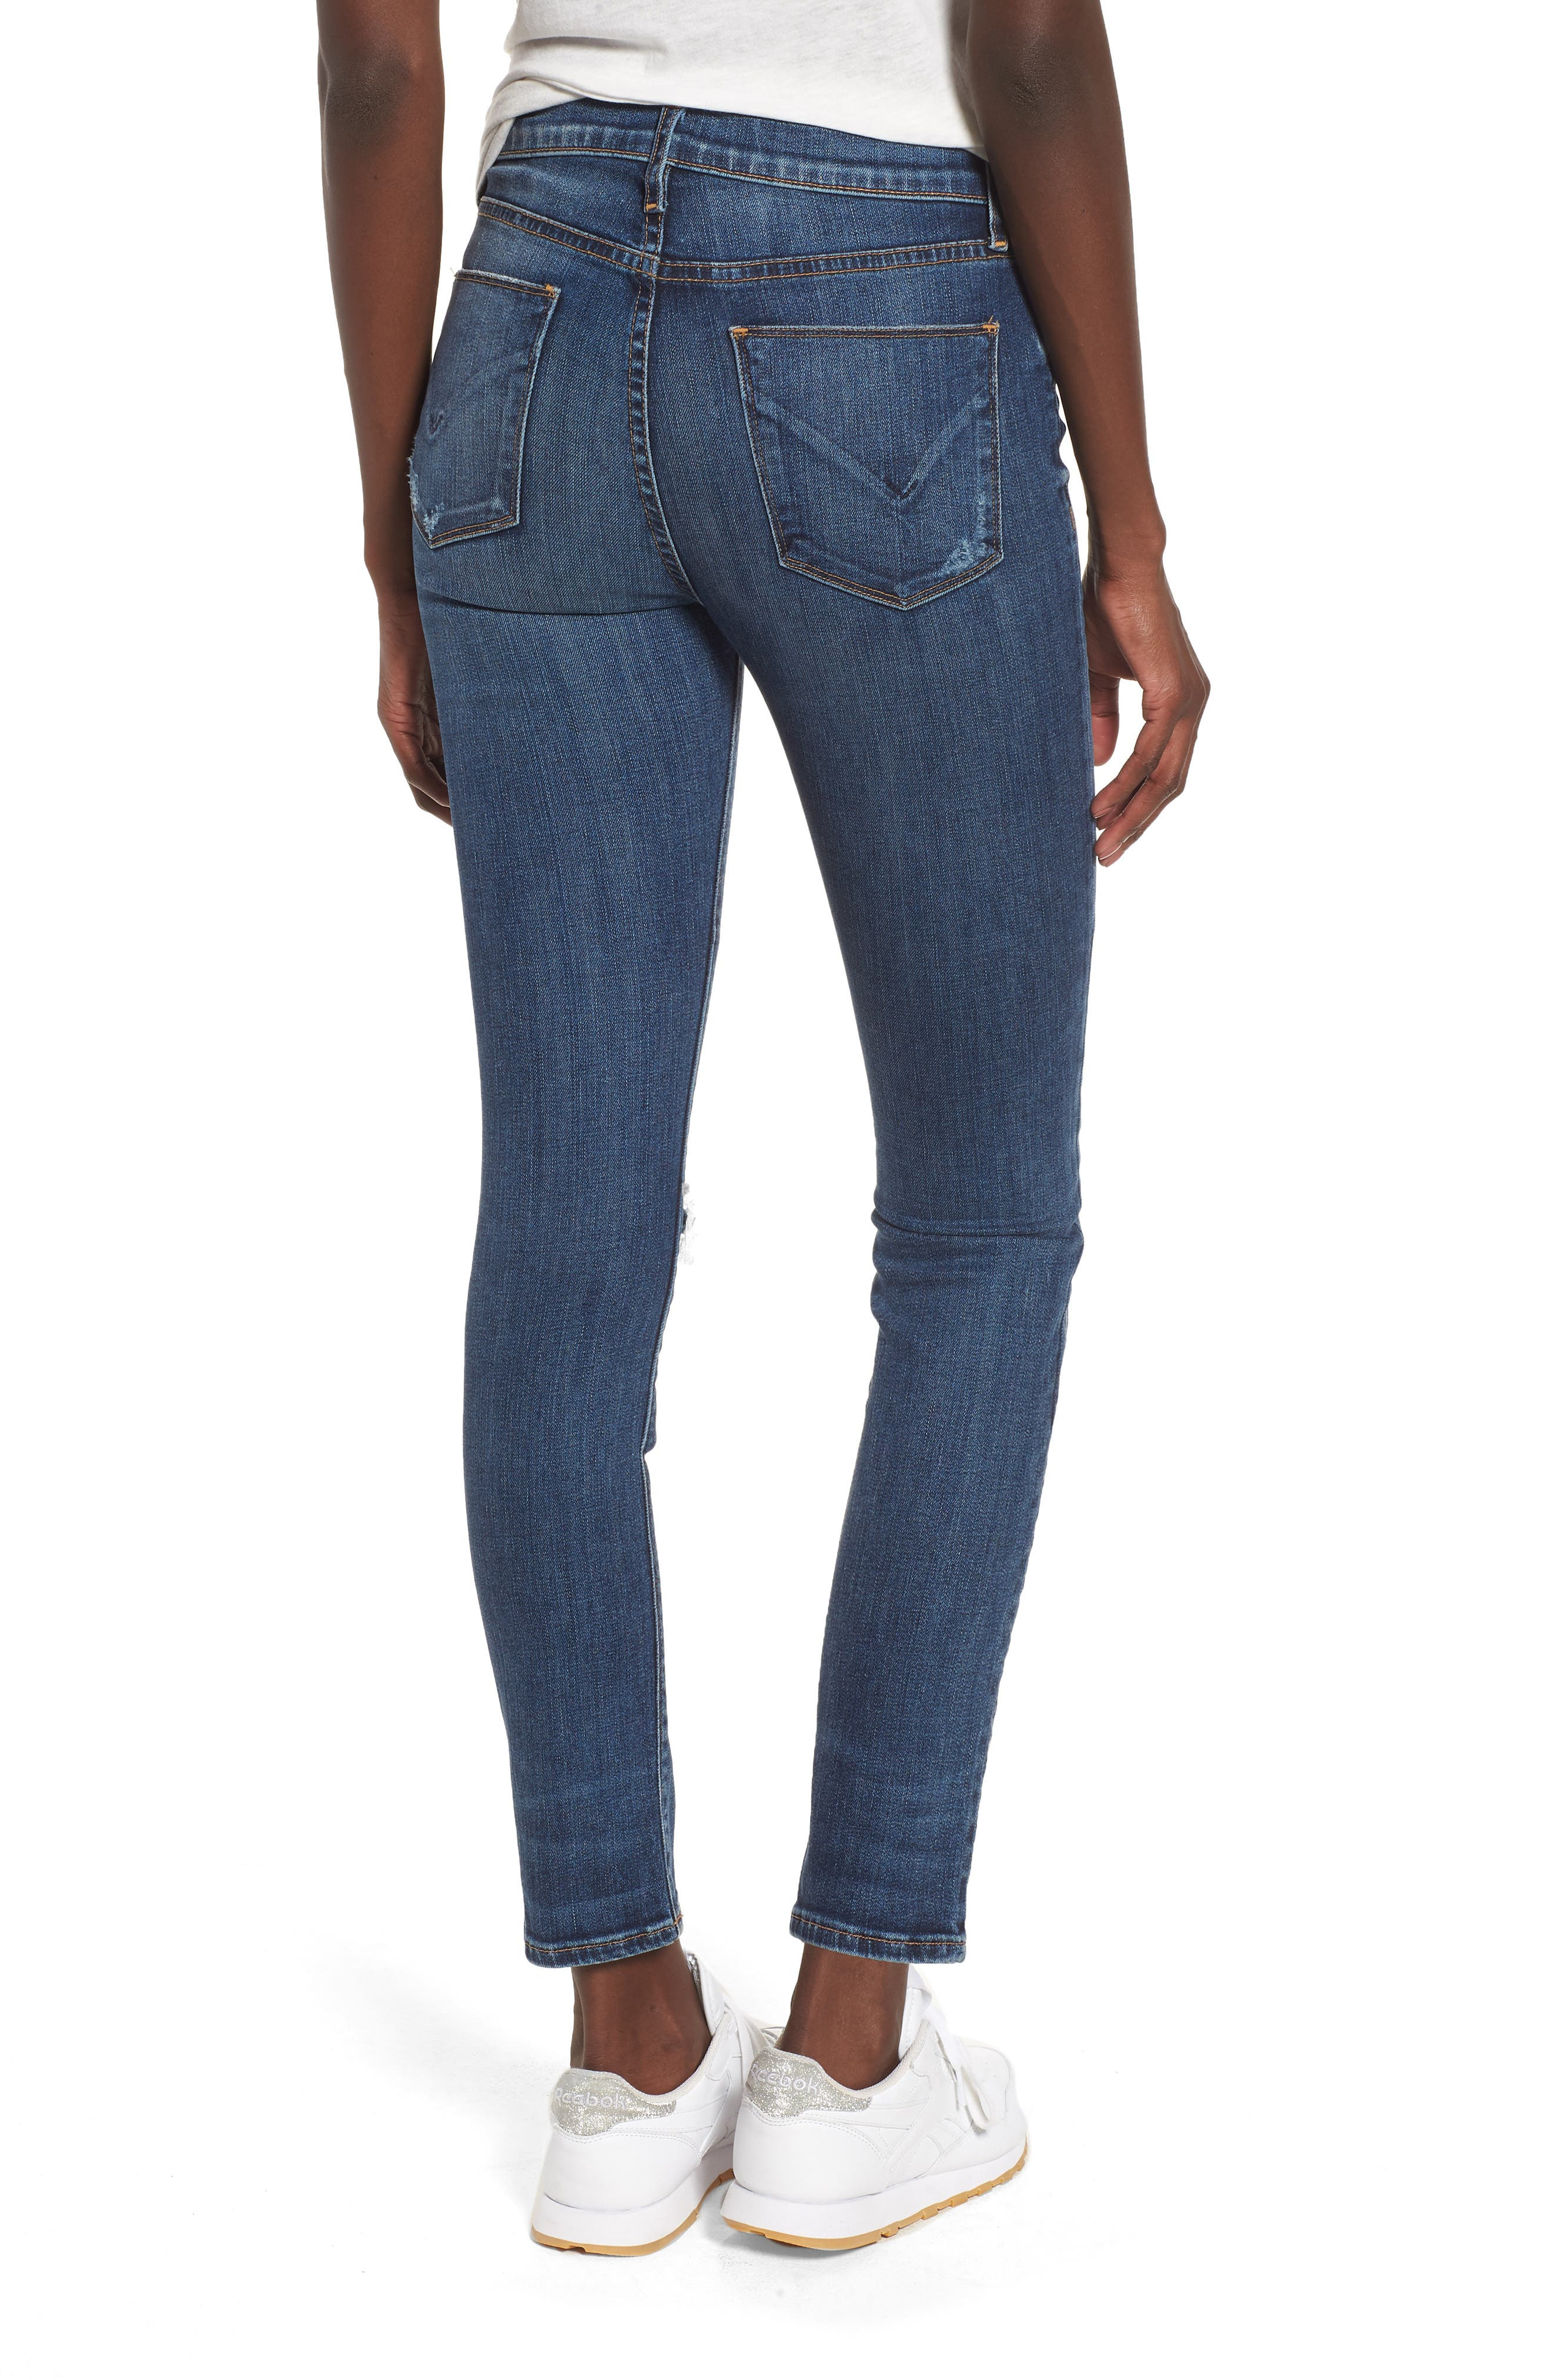 Barbara Exposed Zip High Waist Ankle Skinny Jeans,                             Alternate thumbnail 2, color,                             421